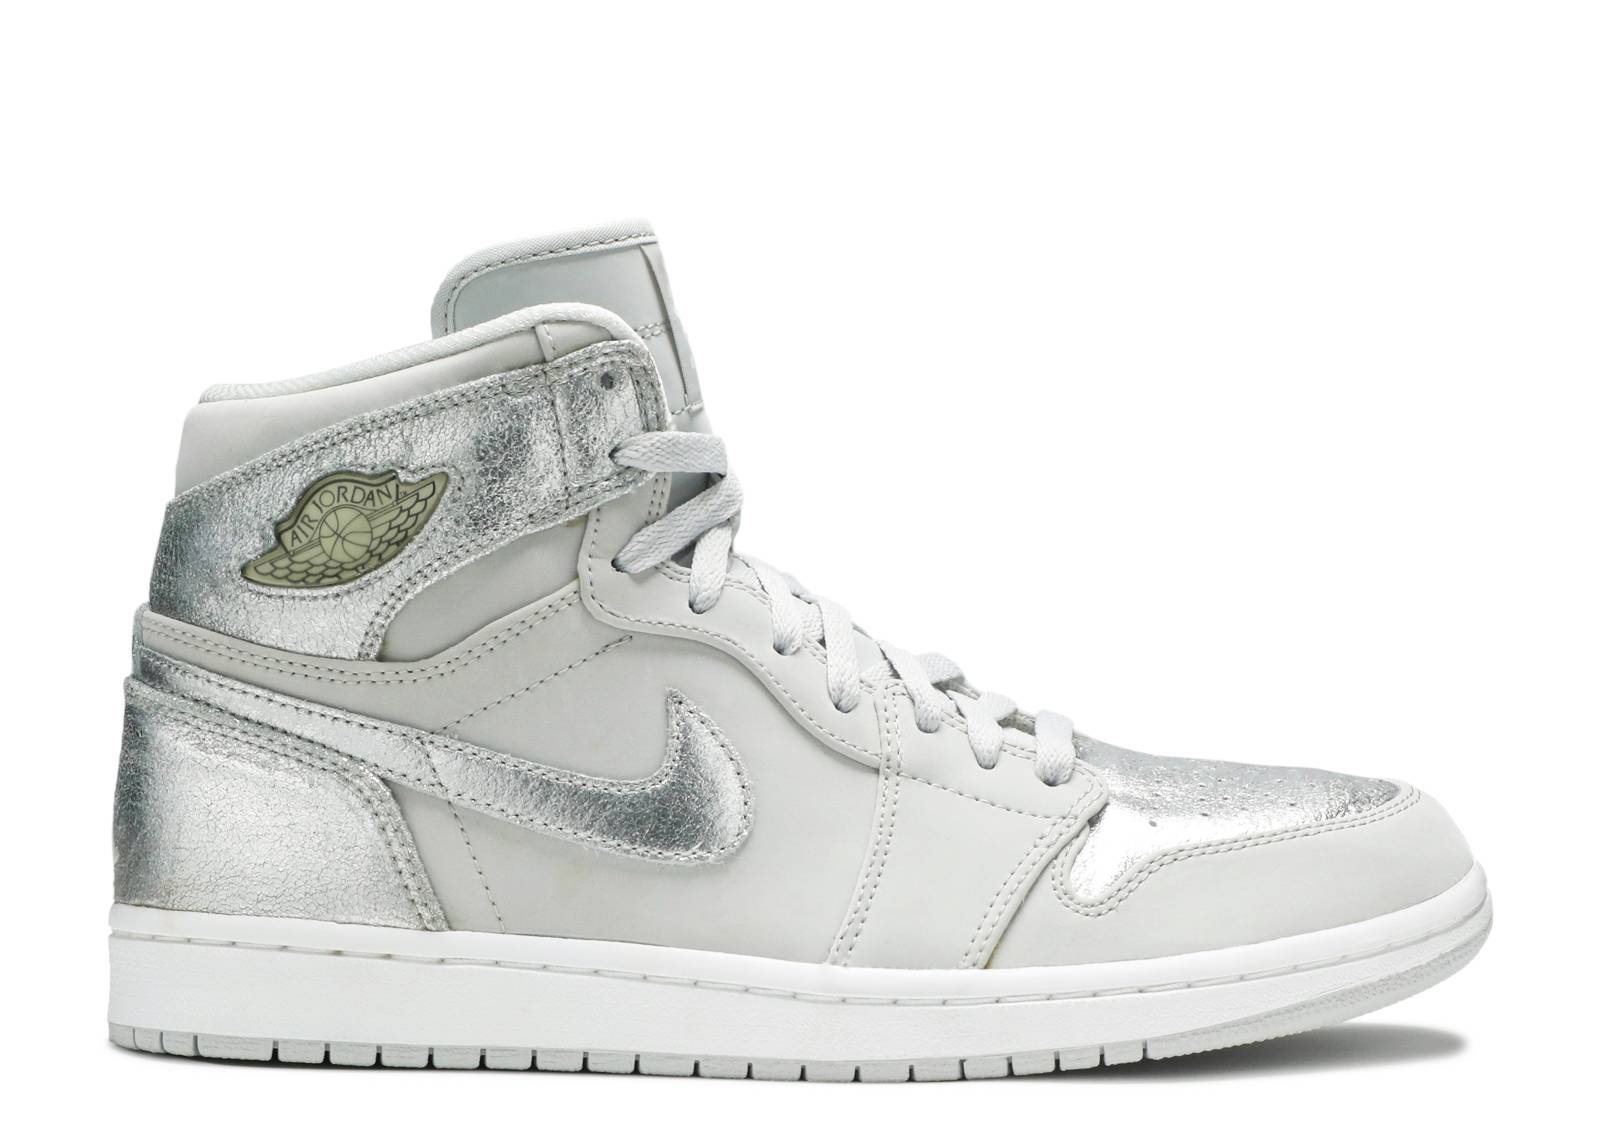 reputable site b0bb4 c2d4e air jordan 1 retro hi silver